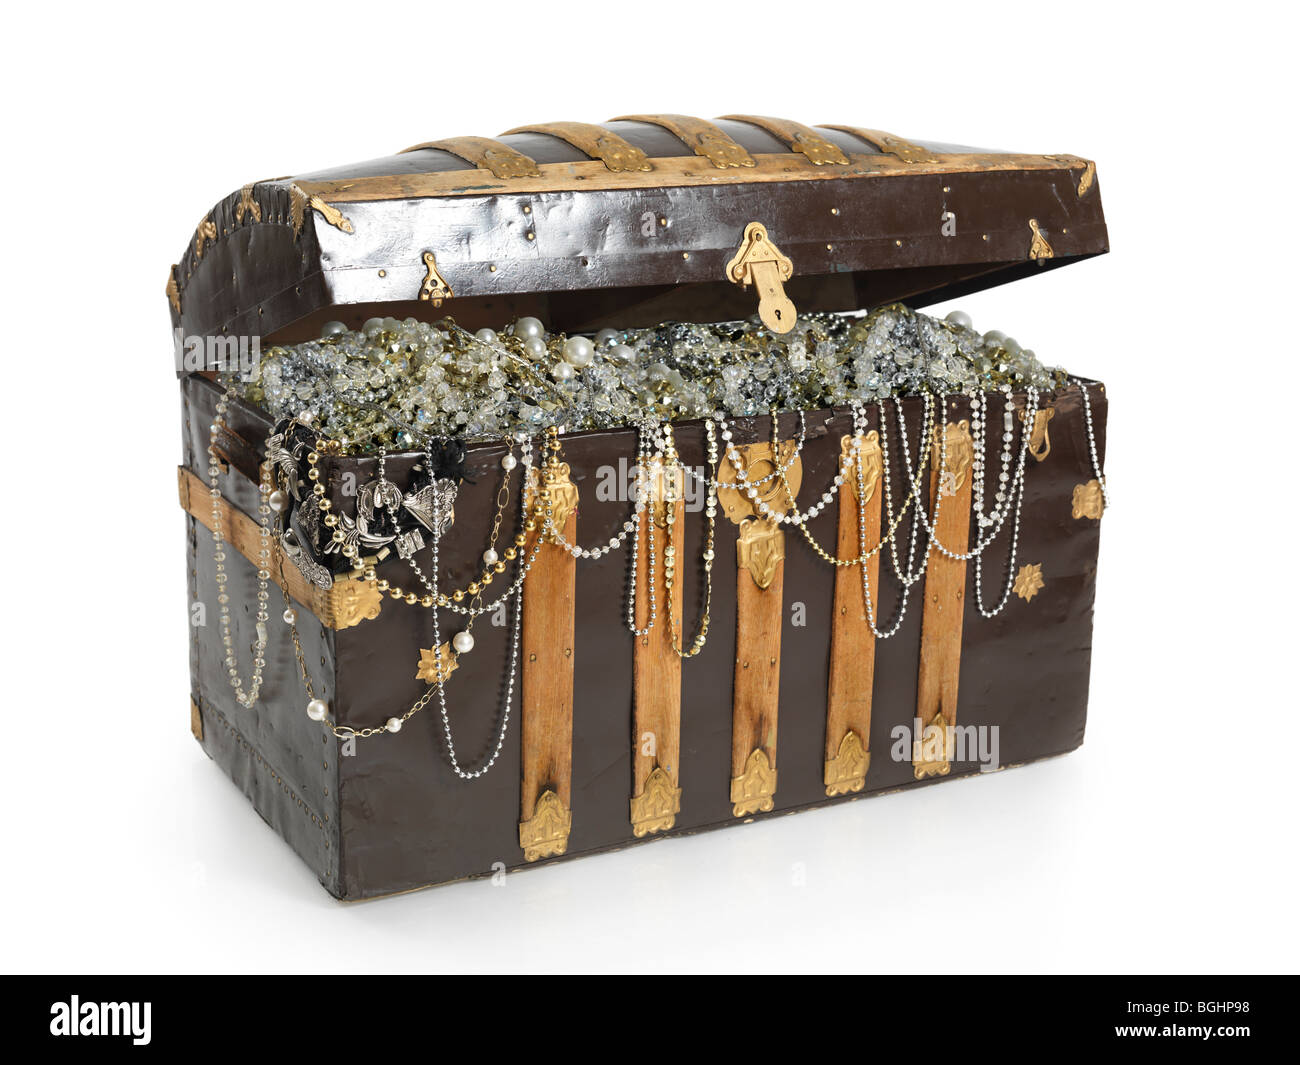 Treasure chest full of jewels and gold. Isolated on white background. - Stock Image